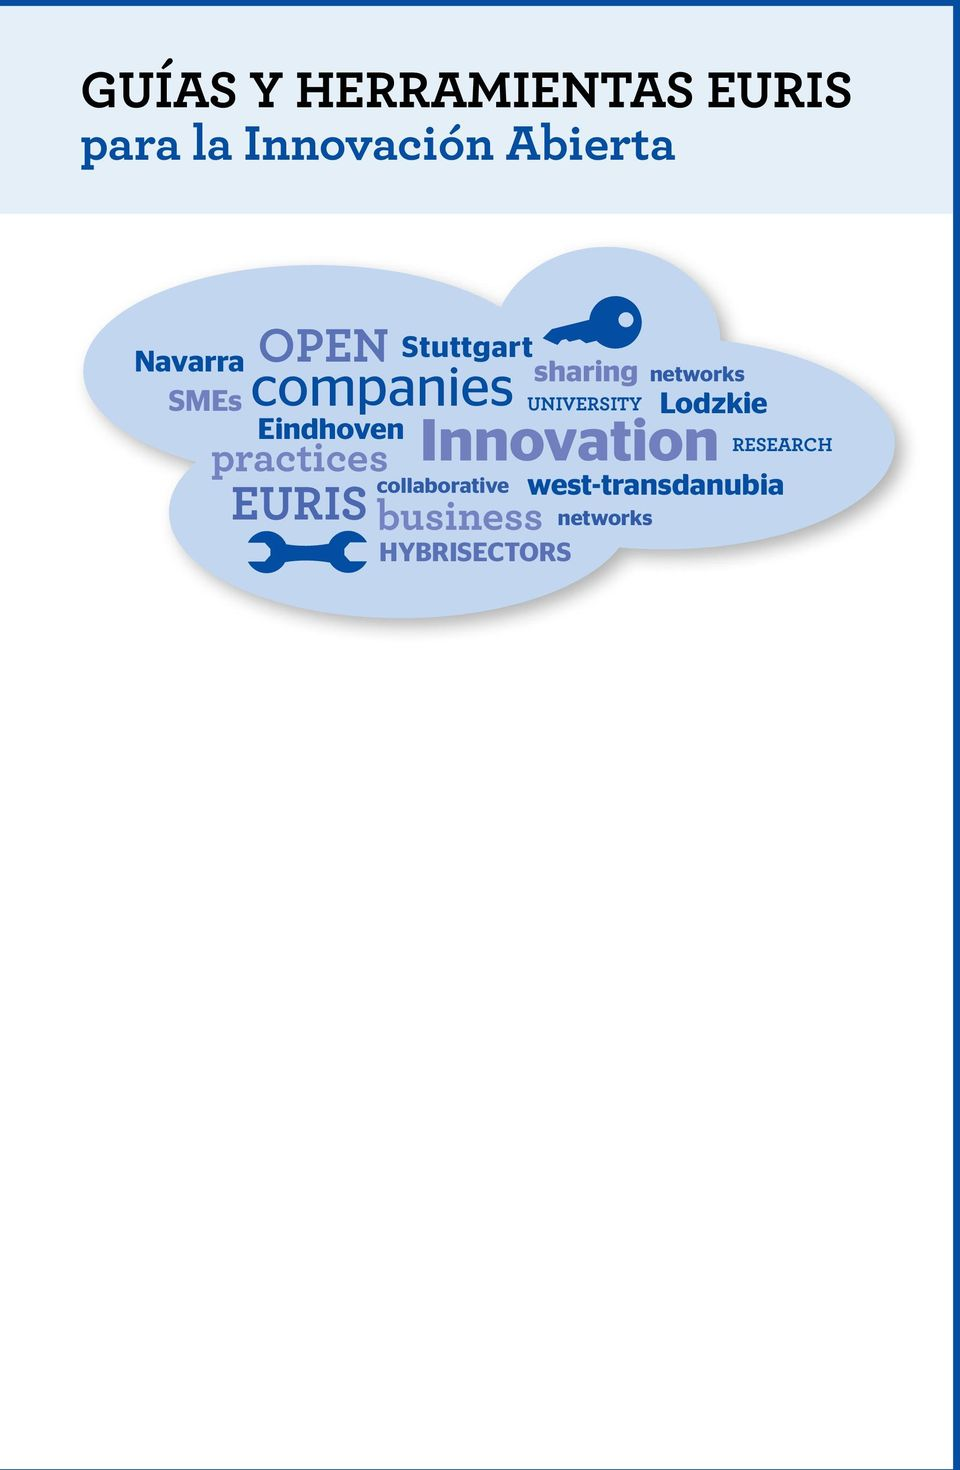 practices collaborative EURIS business Innovation